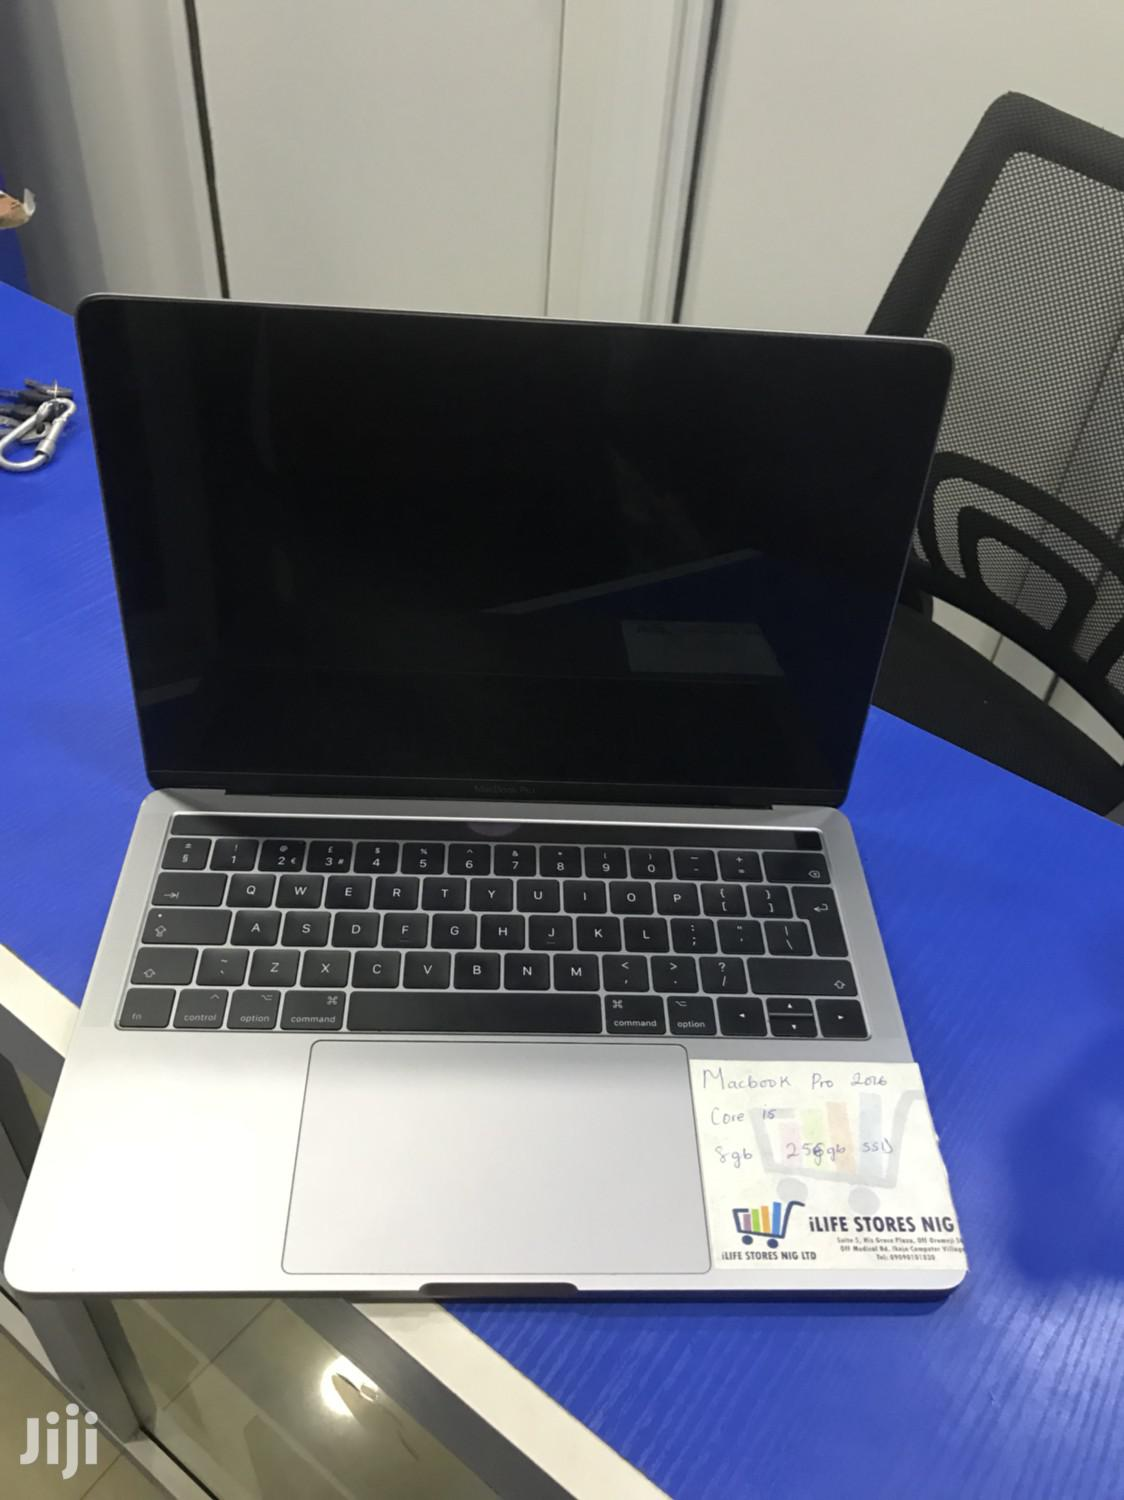 Laptop Apple MacBook Pro 2016 8GB Intel Core i5 SSD 256GB | Laptops & Computers for sale in Ikeja, Lagos State, Nigeria